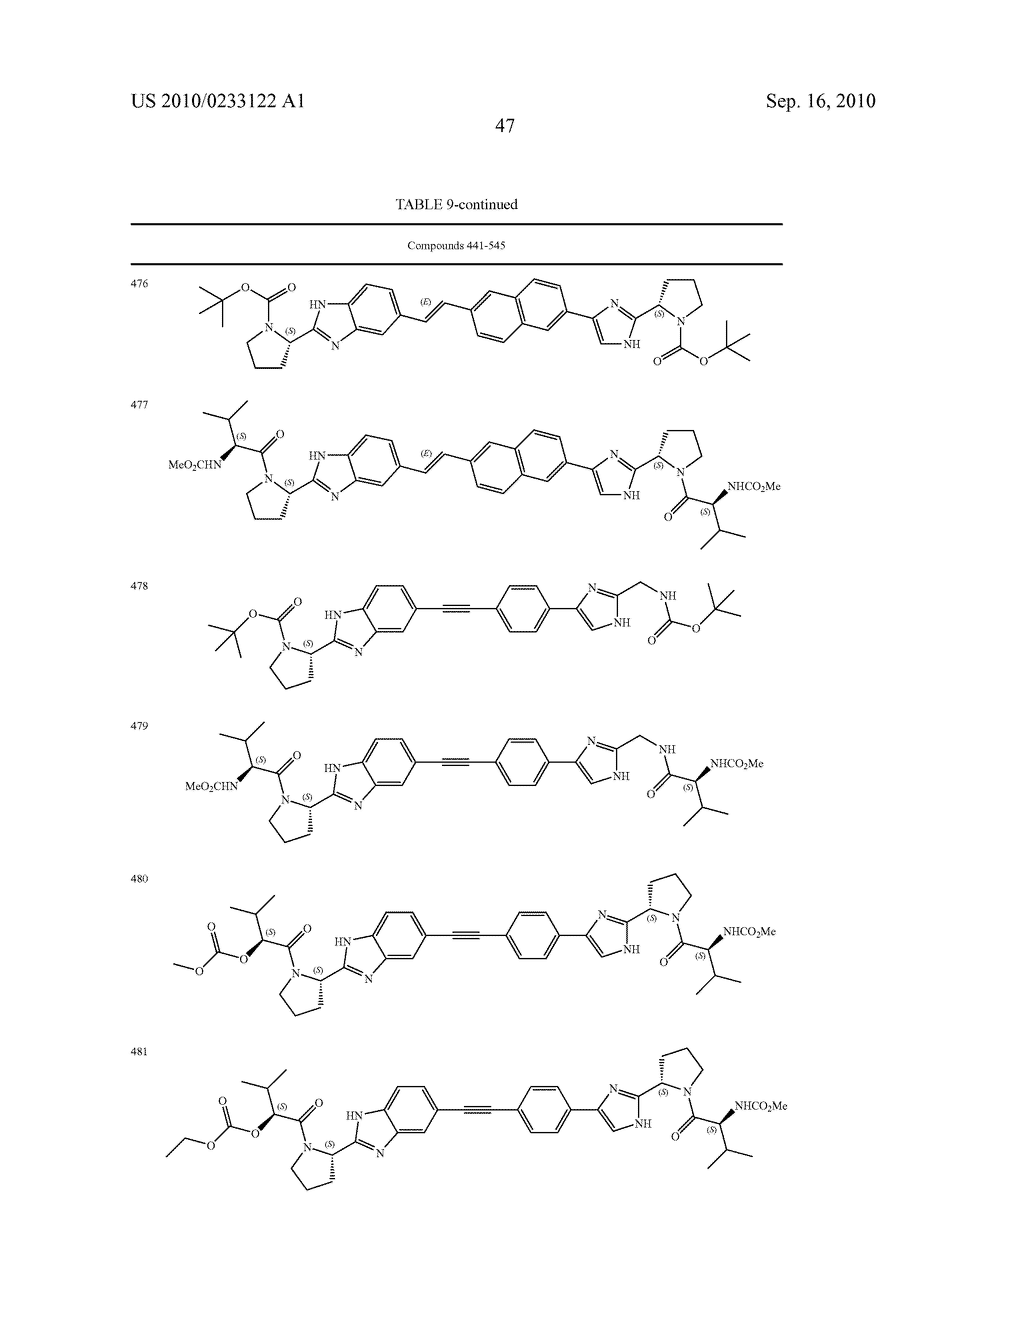 NOVEL BENZIMIDAZOLE DERIVATIVES - diagram, schematic, and image 48